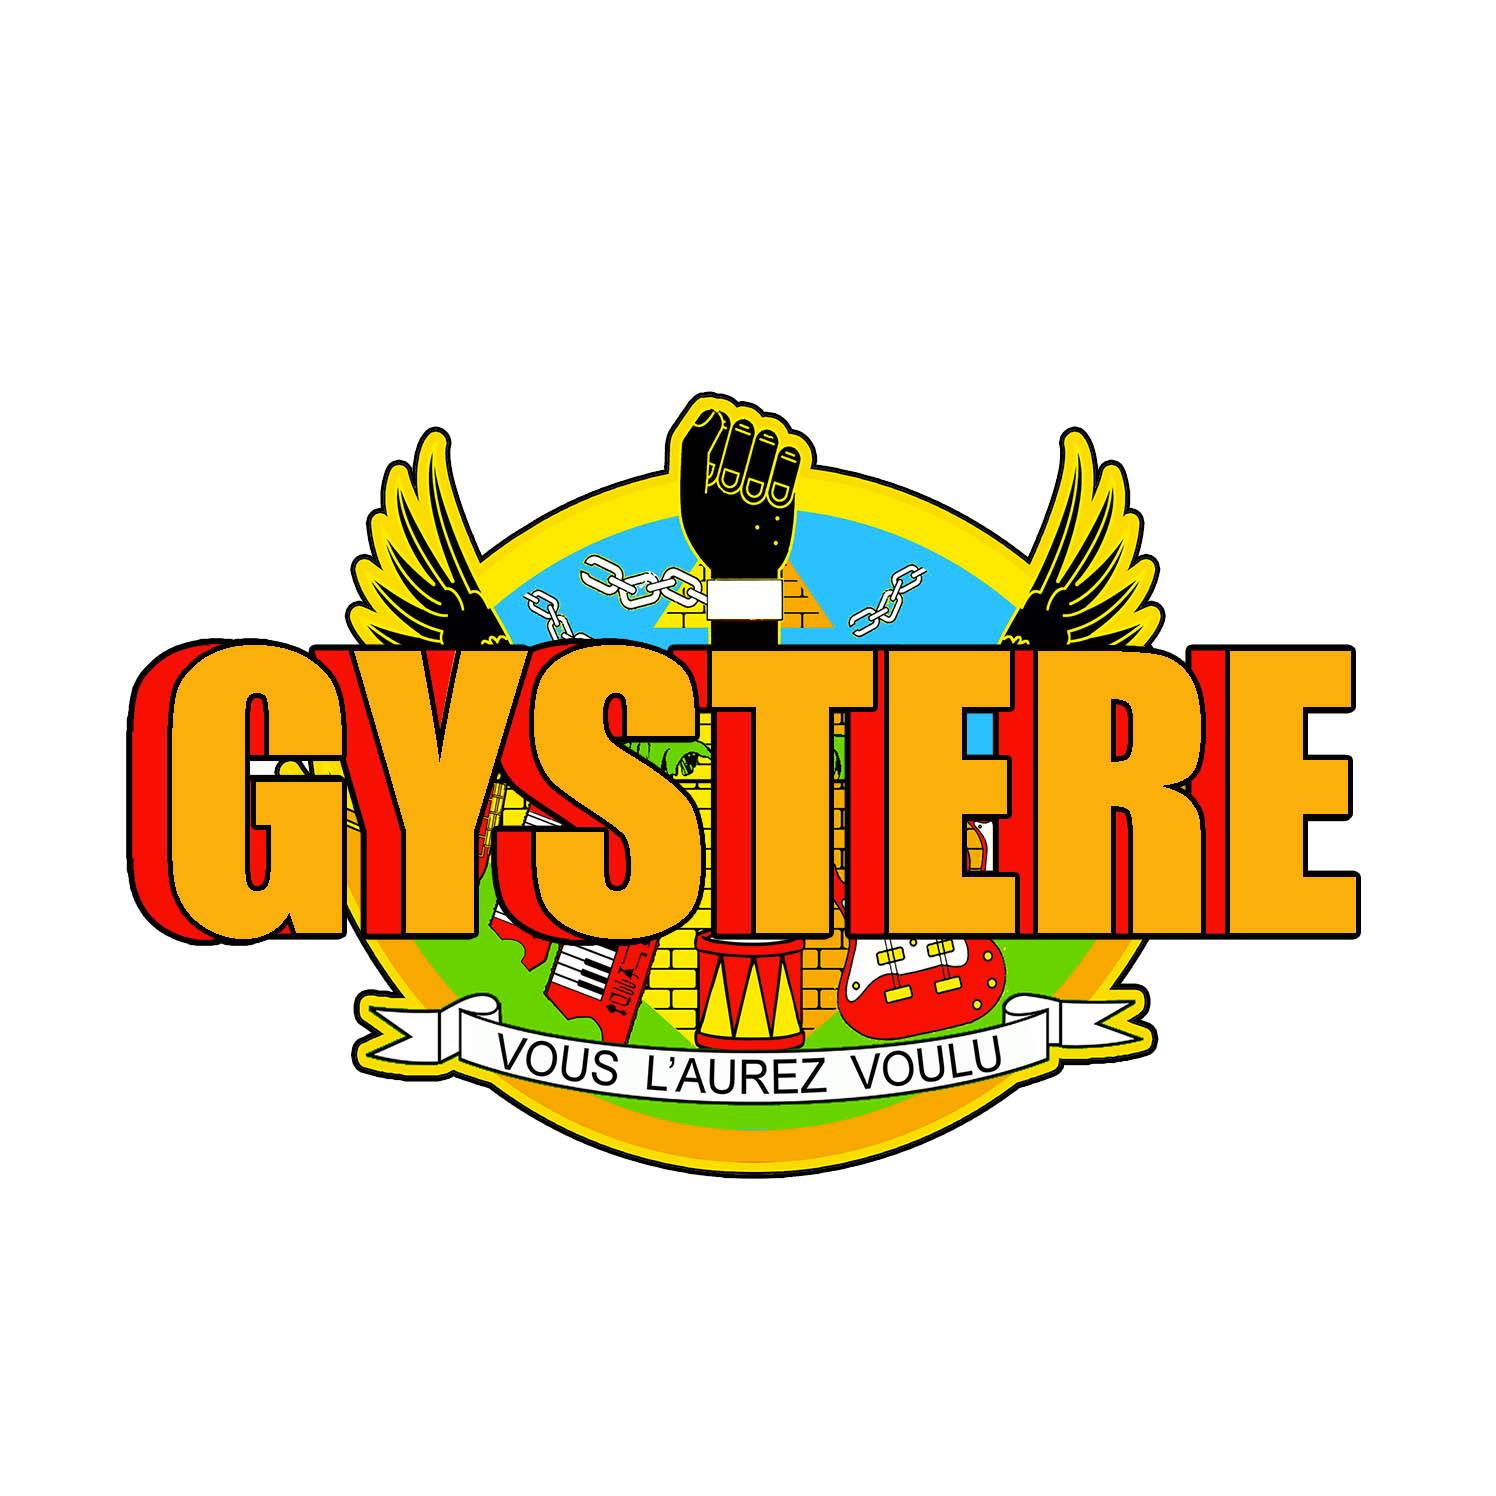 GYSTERE